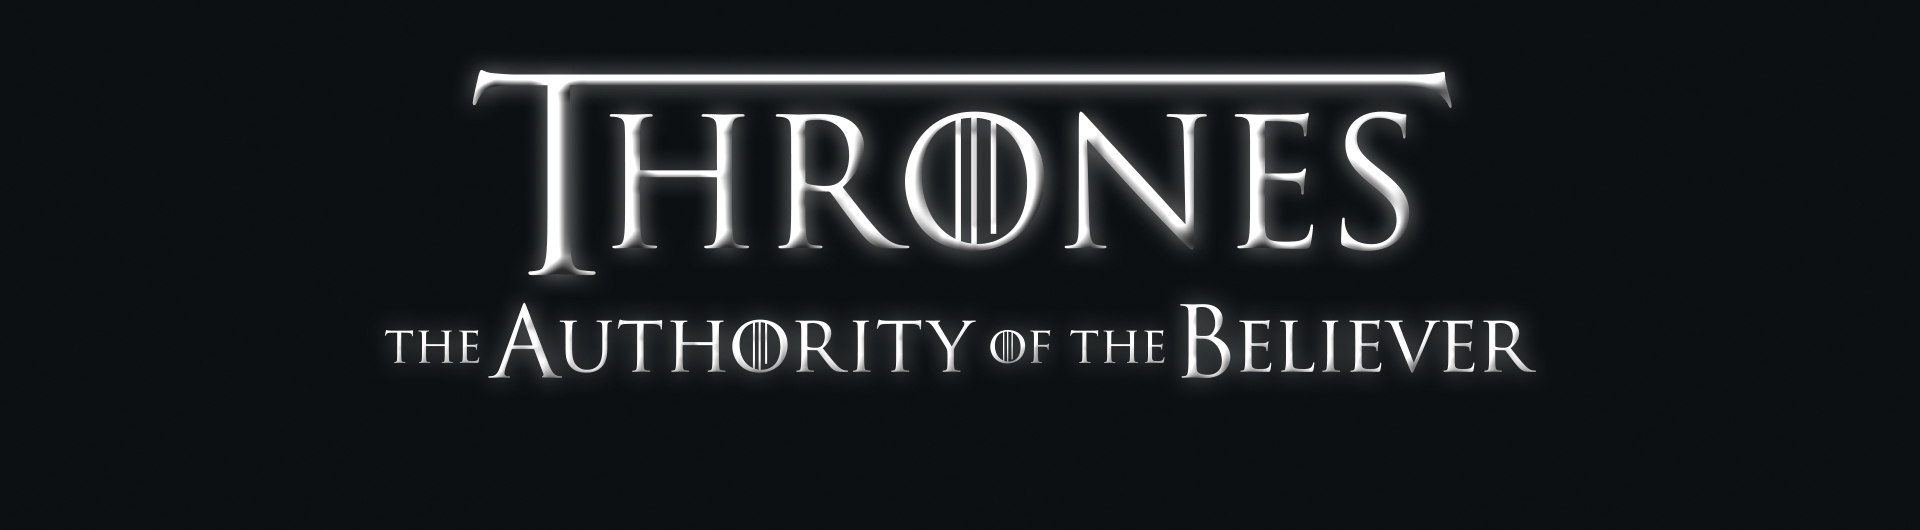 throne_new-website